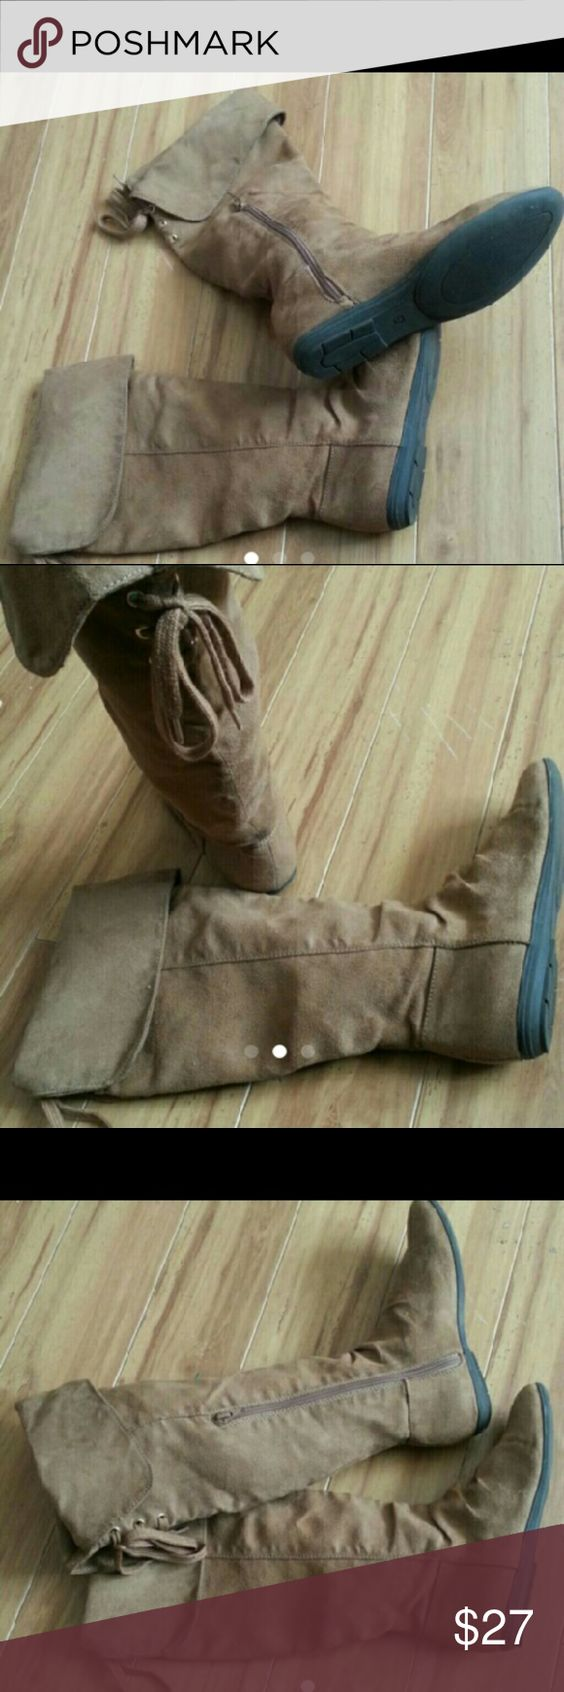 Tall H&M suede boots Brown suede boots size zip. Back tie detail good  condition H&M Shoes Over the Knee Boots